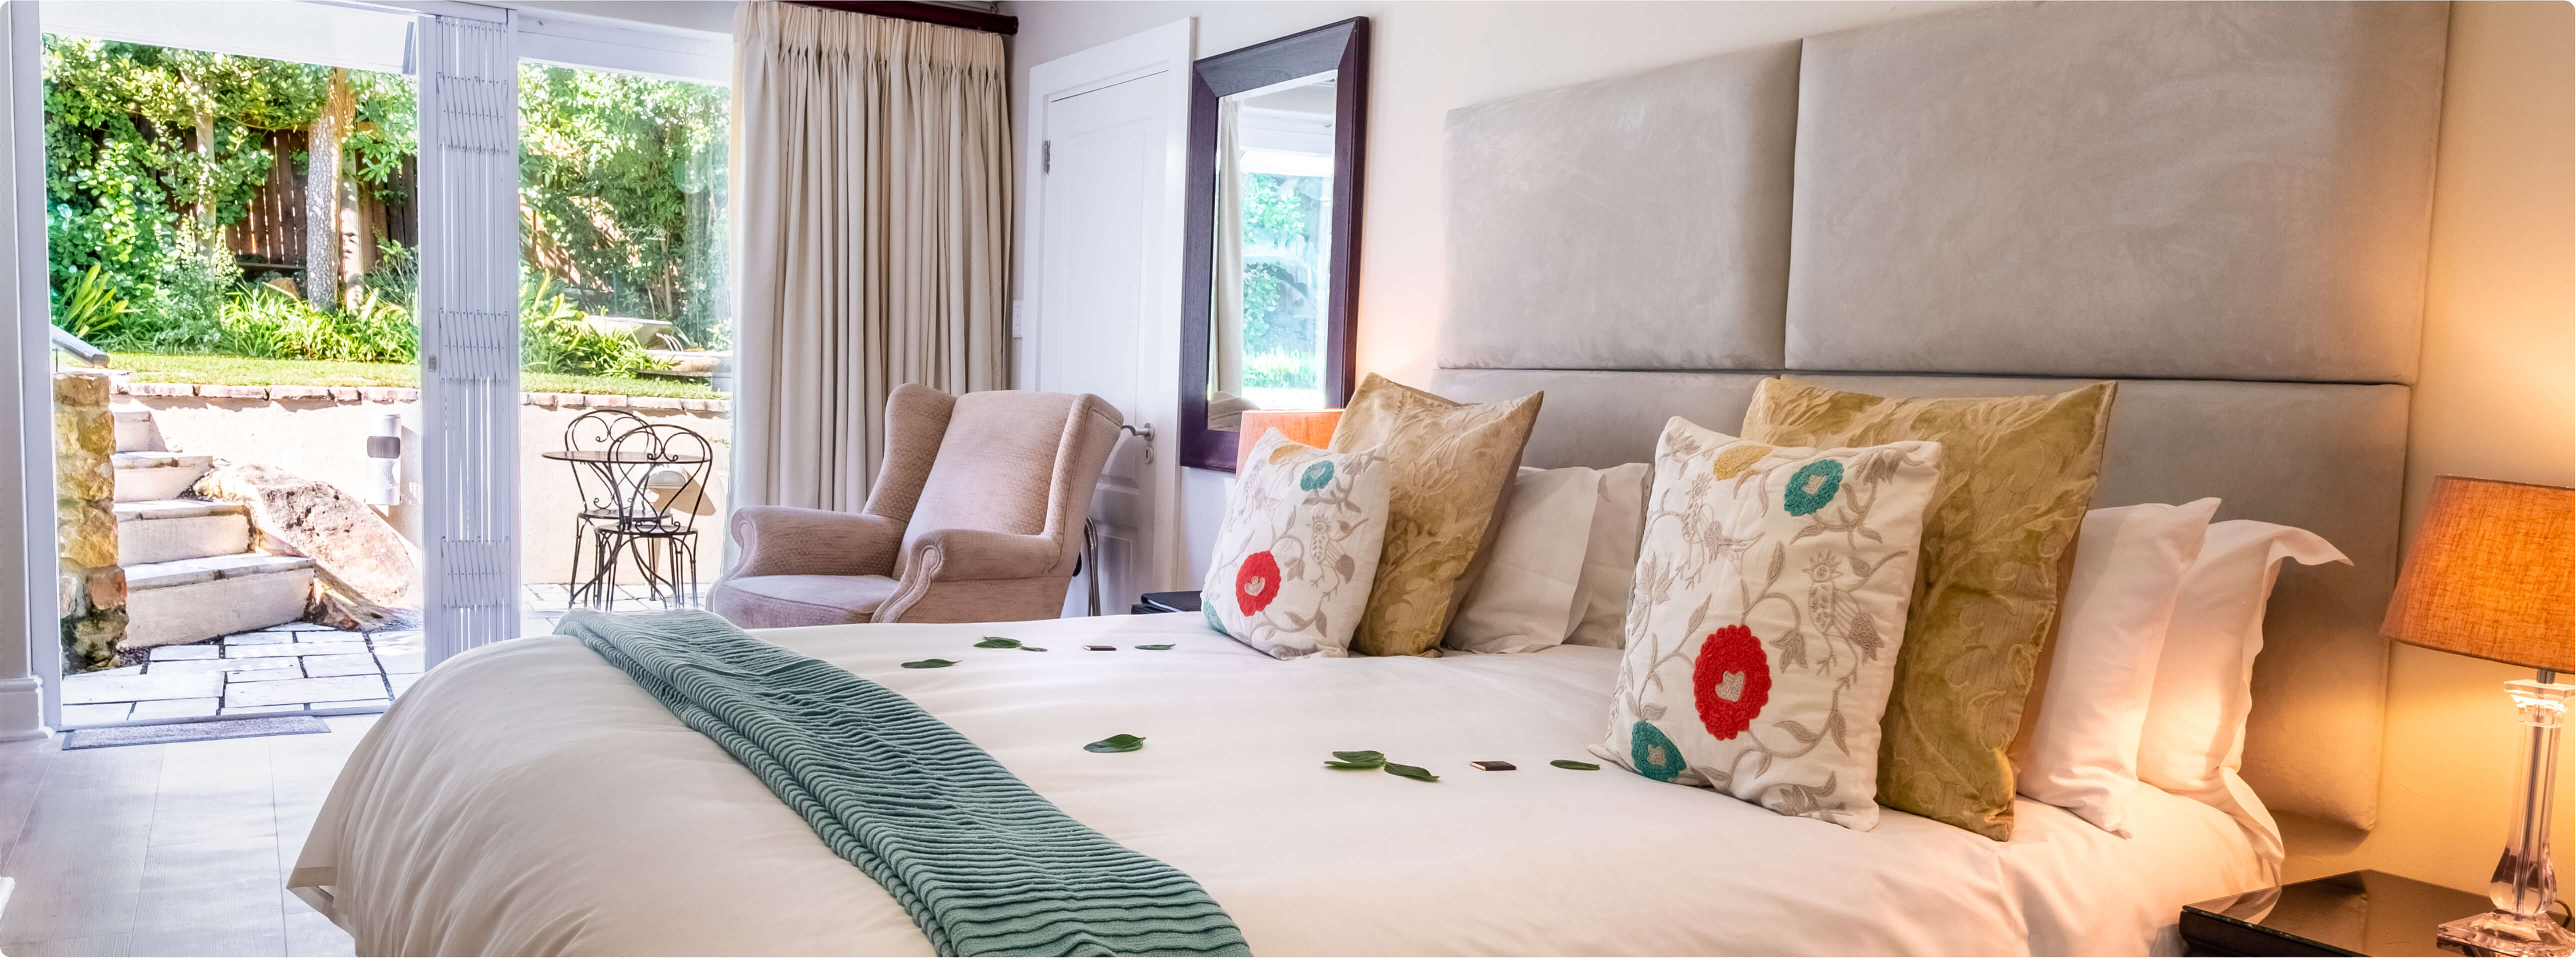 3 On Camps Bay - Classic Room